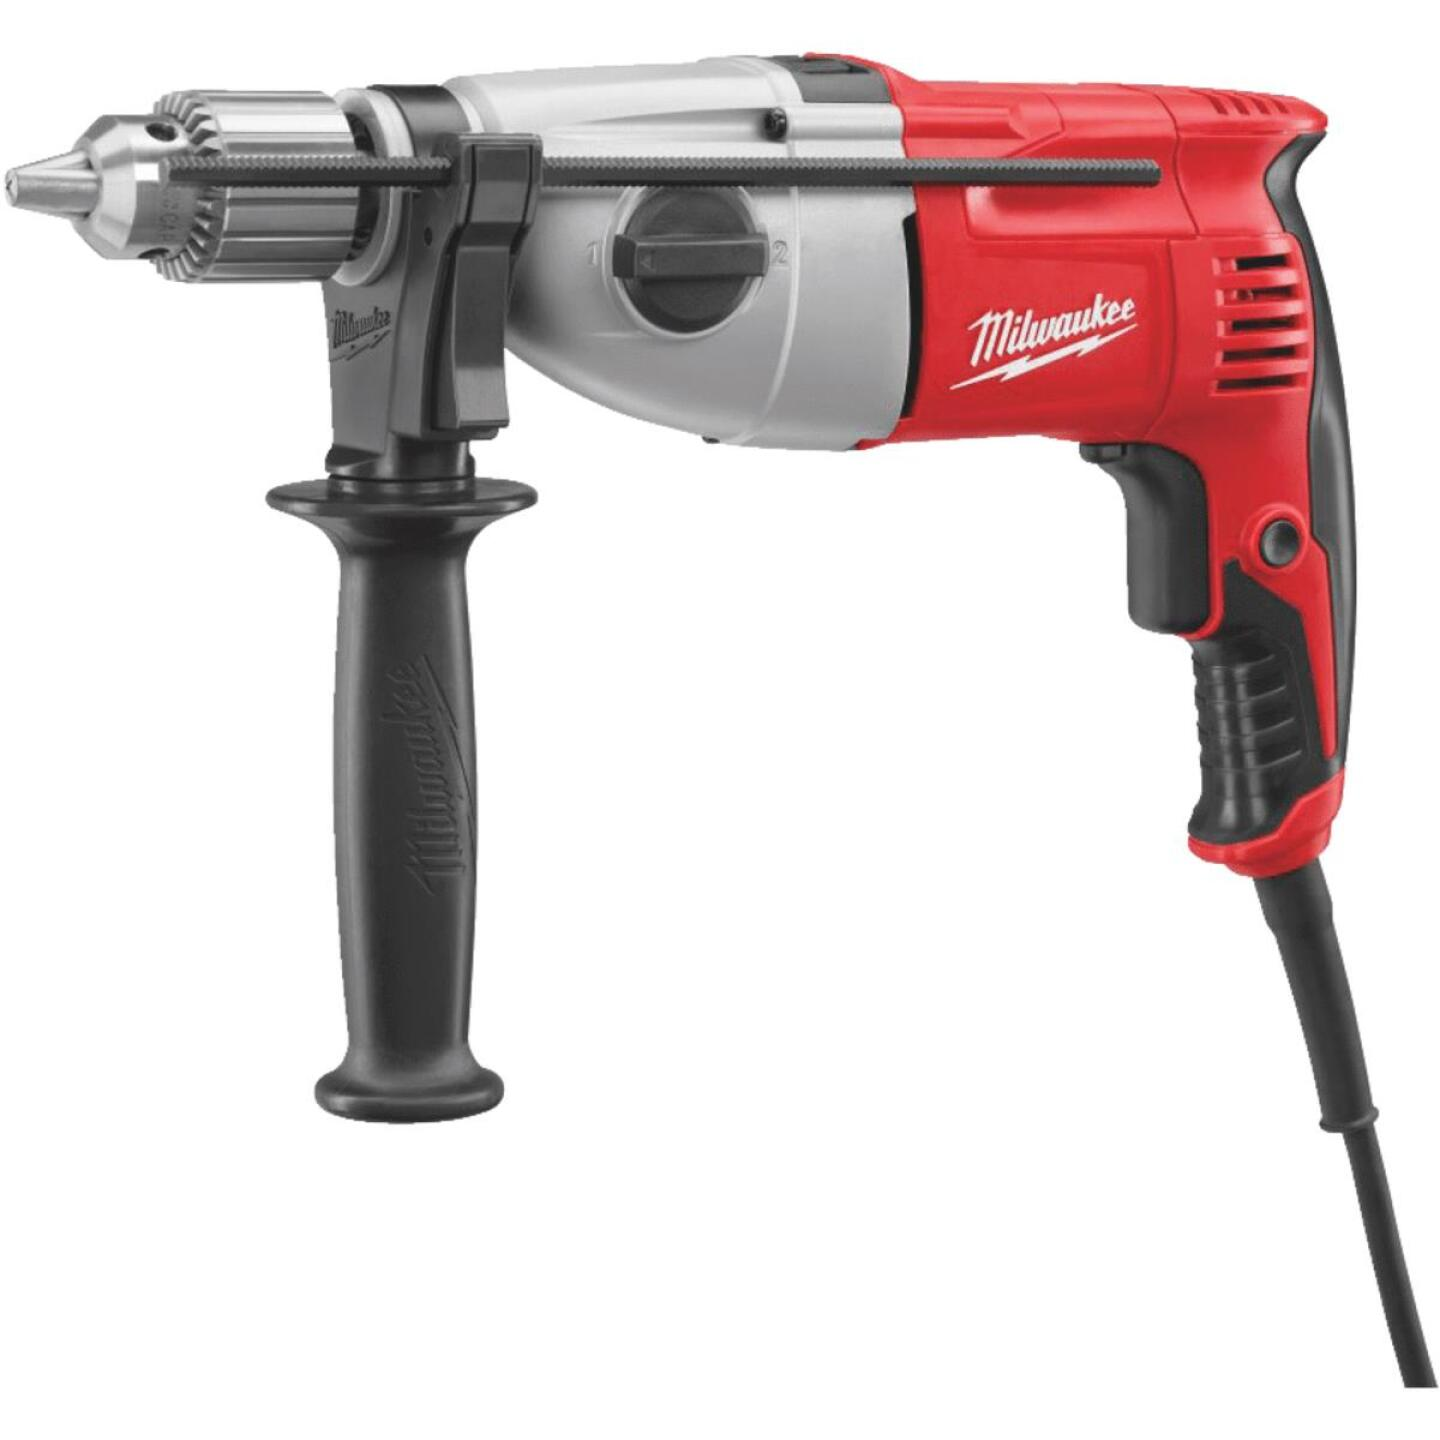 Milwaukee 1/2 In. 7.5A Electric Hammer Drill Image 1